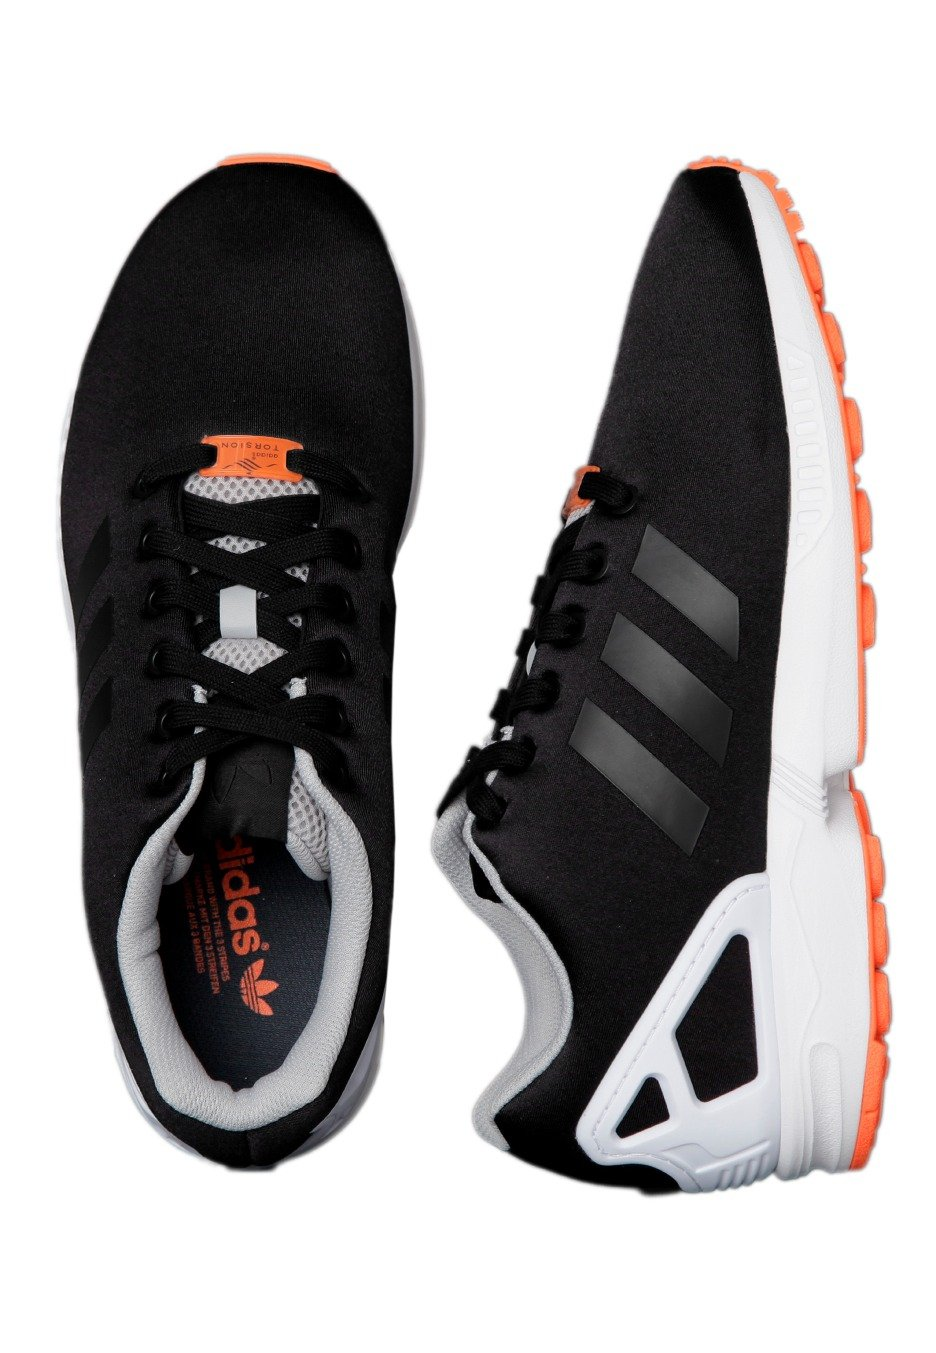 best service 3184e 79c09 Adidas - ZX Flux Core BlackFtwr White - Shoes - Impericon.co